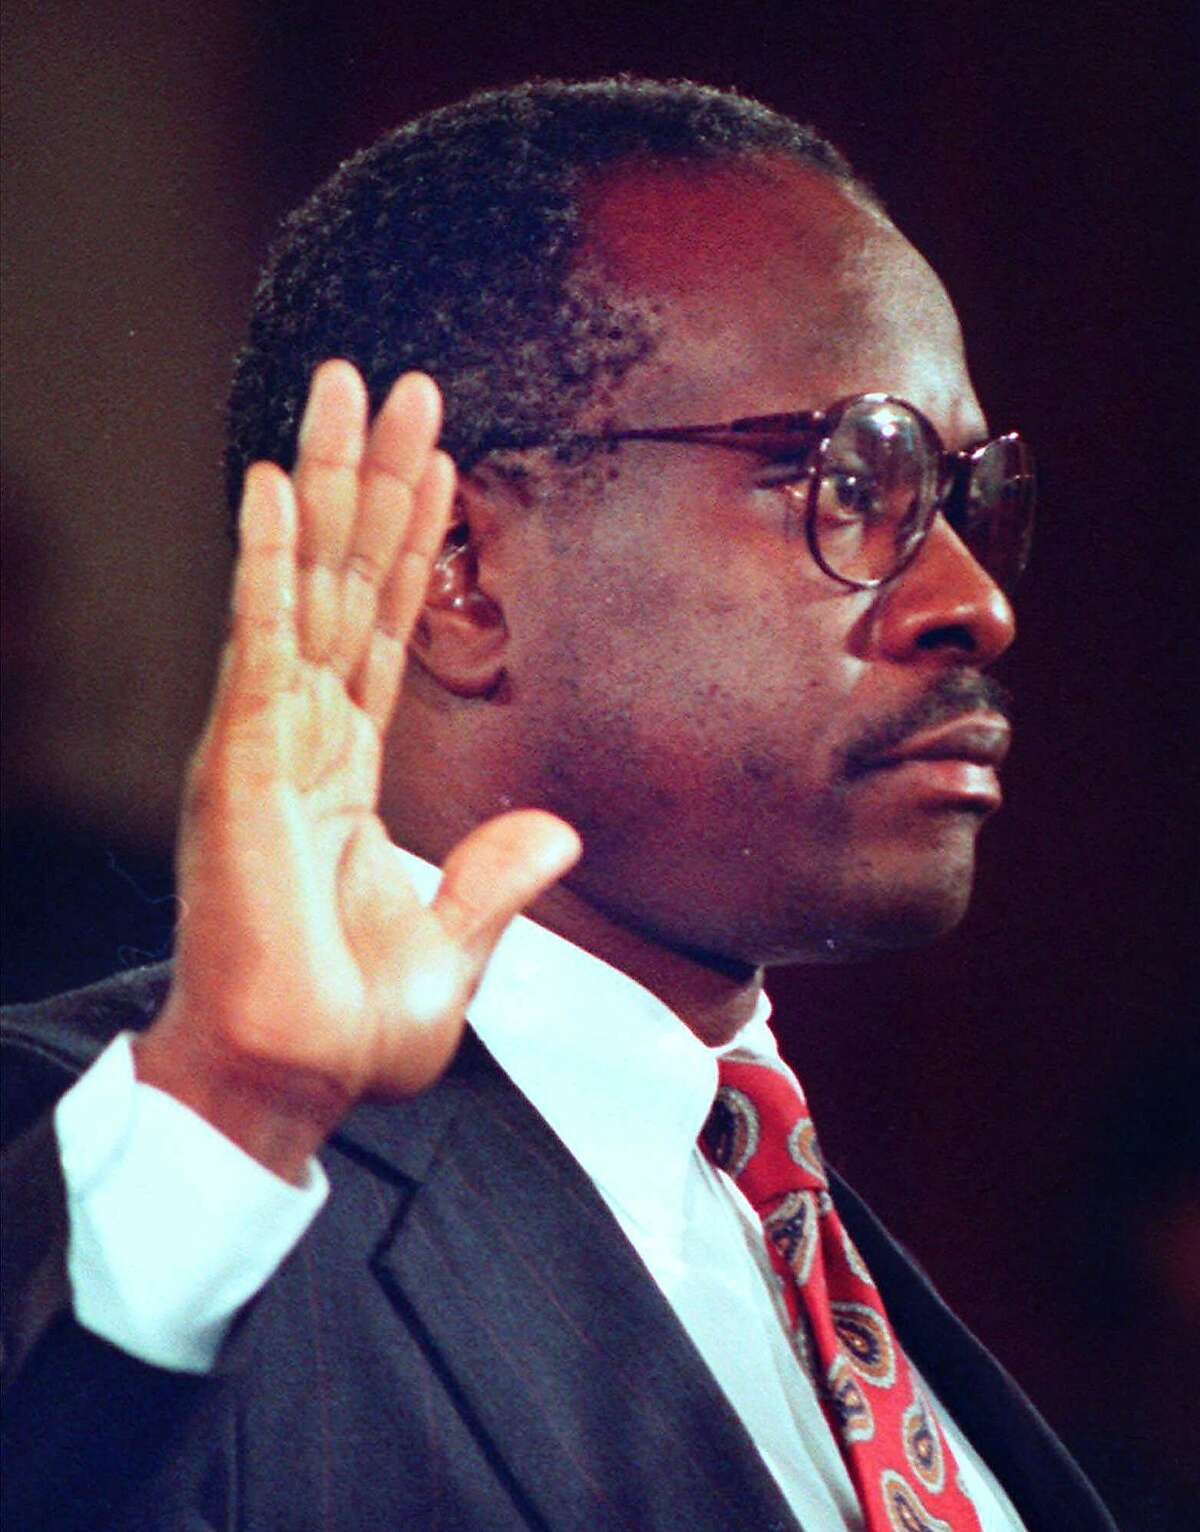 FILE--Judge Clarence Thomas is sworn in prior to testifying before the Senate Judiciary Committee on his nomination to the Supreme Court, on Capitol Hill in Washington, in this Oct. 11, 1991 file photo. After a decade on the nation's high court, Thomas, the second black to serve on the court, has settled into a comfortable routine. (AP Photo/Greg Gibson, File)